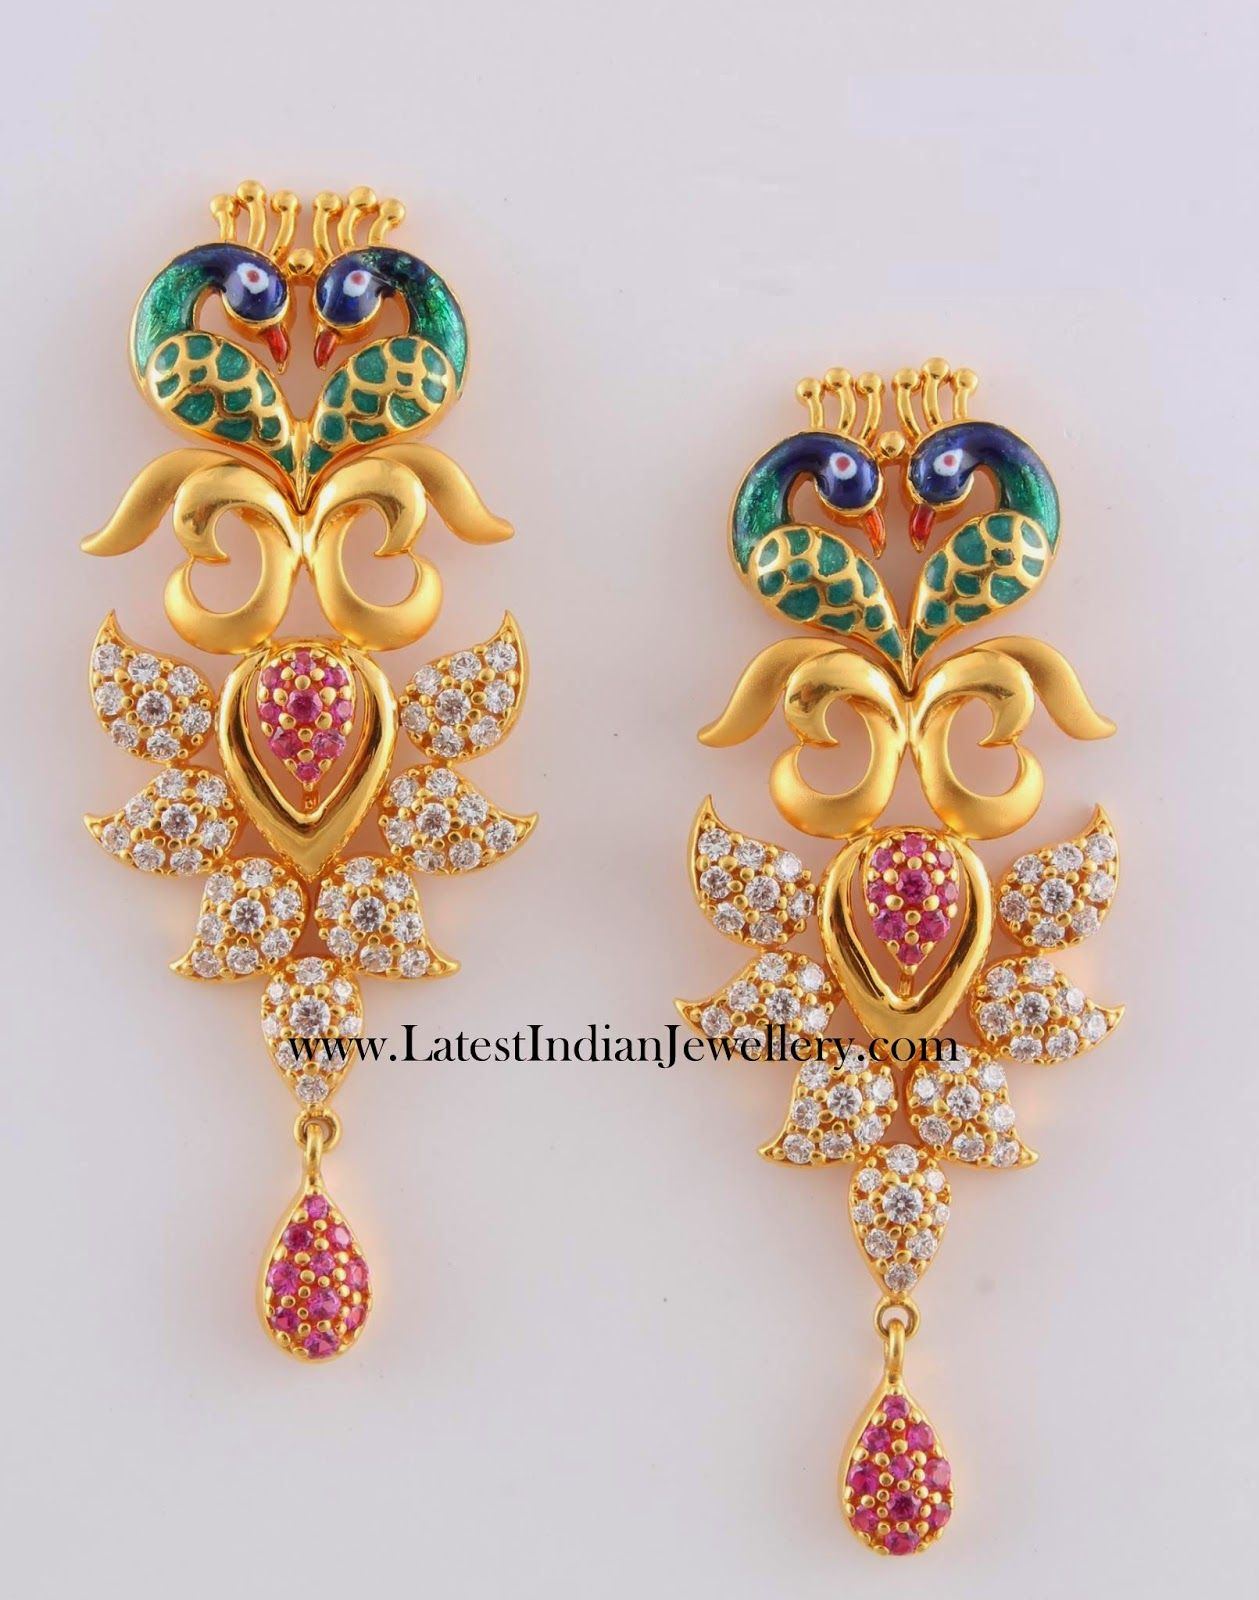 Colorful Peacock Gold Earrings | Peacocks, Gold and India jewelry